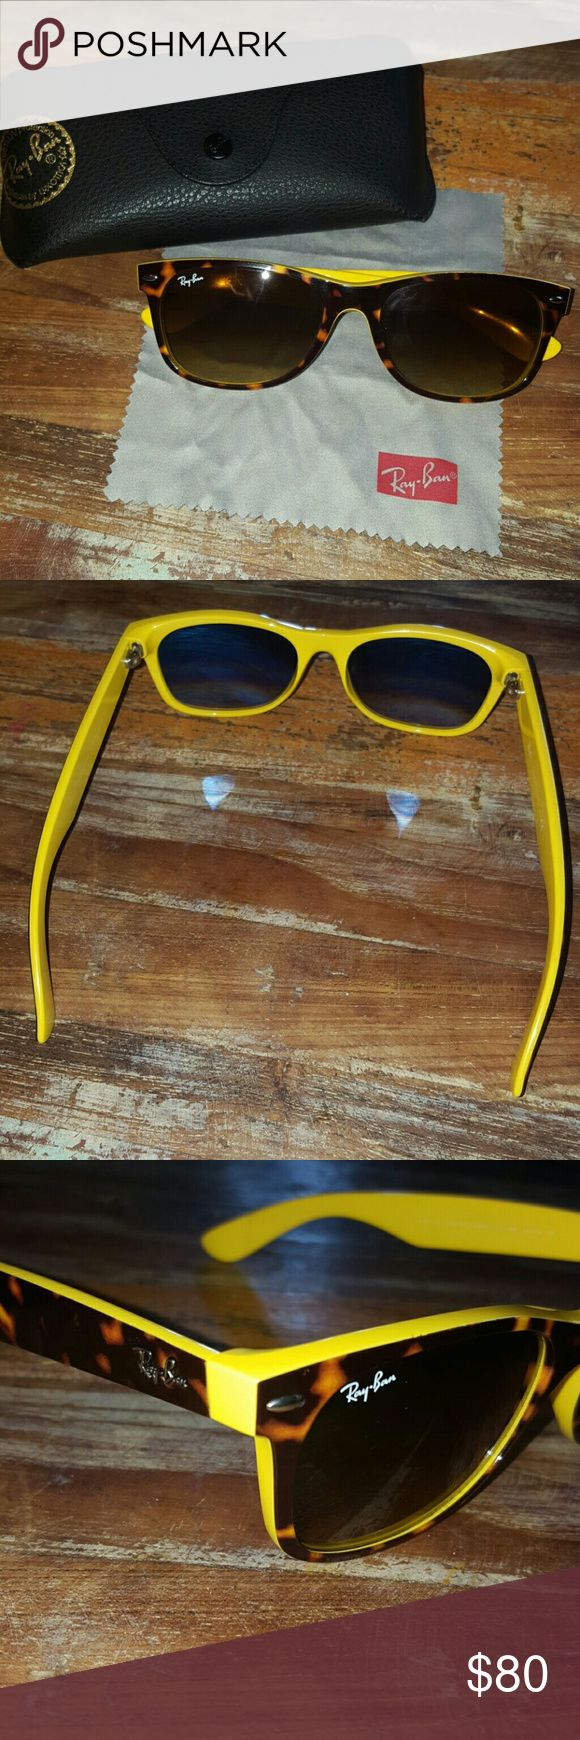 Yellow Ray-Bans Wayfarer Yellow/Tortoise Shell Frame Ray-Bans, Wayfarer style. Unisex. I have a large size head & they fit tad bit big. No scratches on lenses. Great condition! Comes with case & wipe! Ray-Ban Accessories Sunglasses